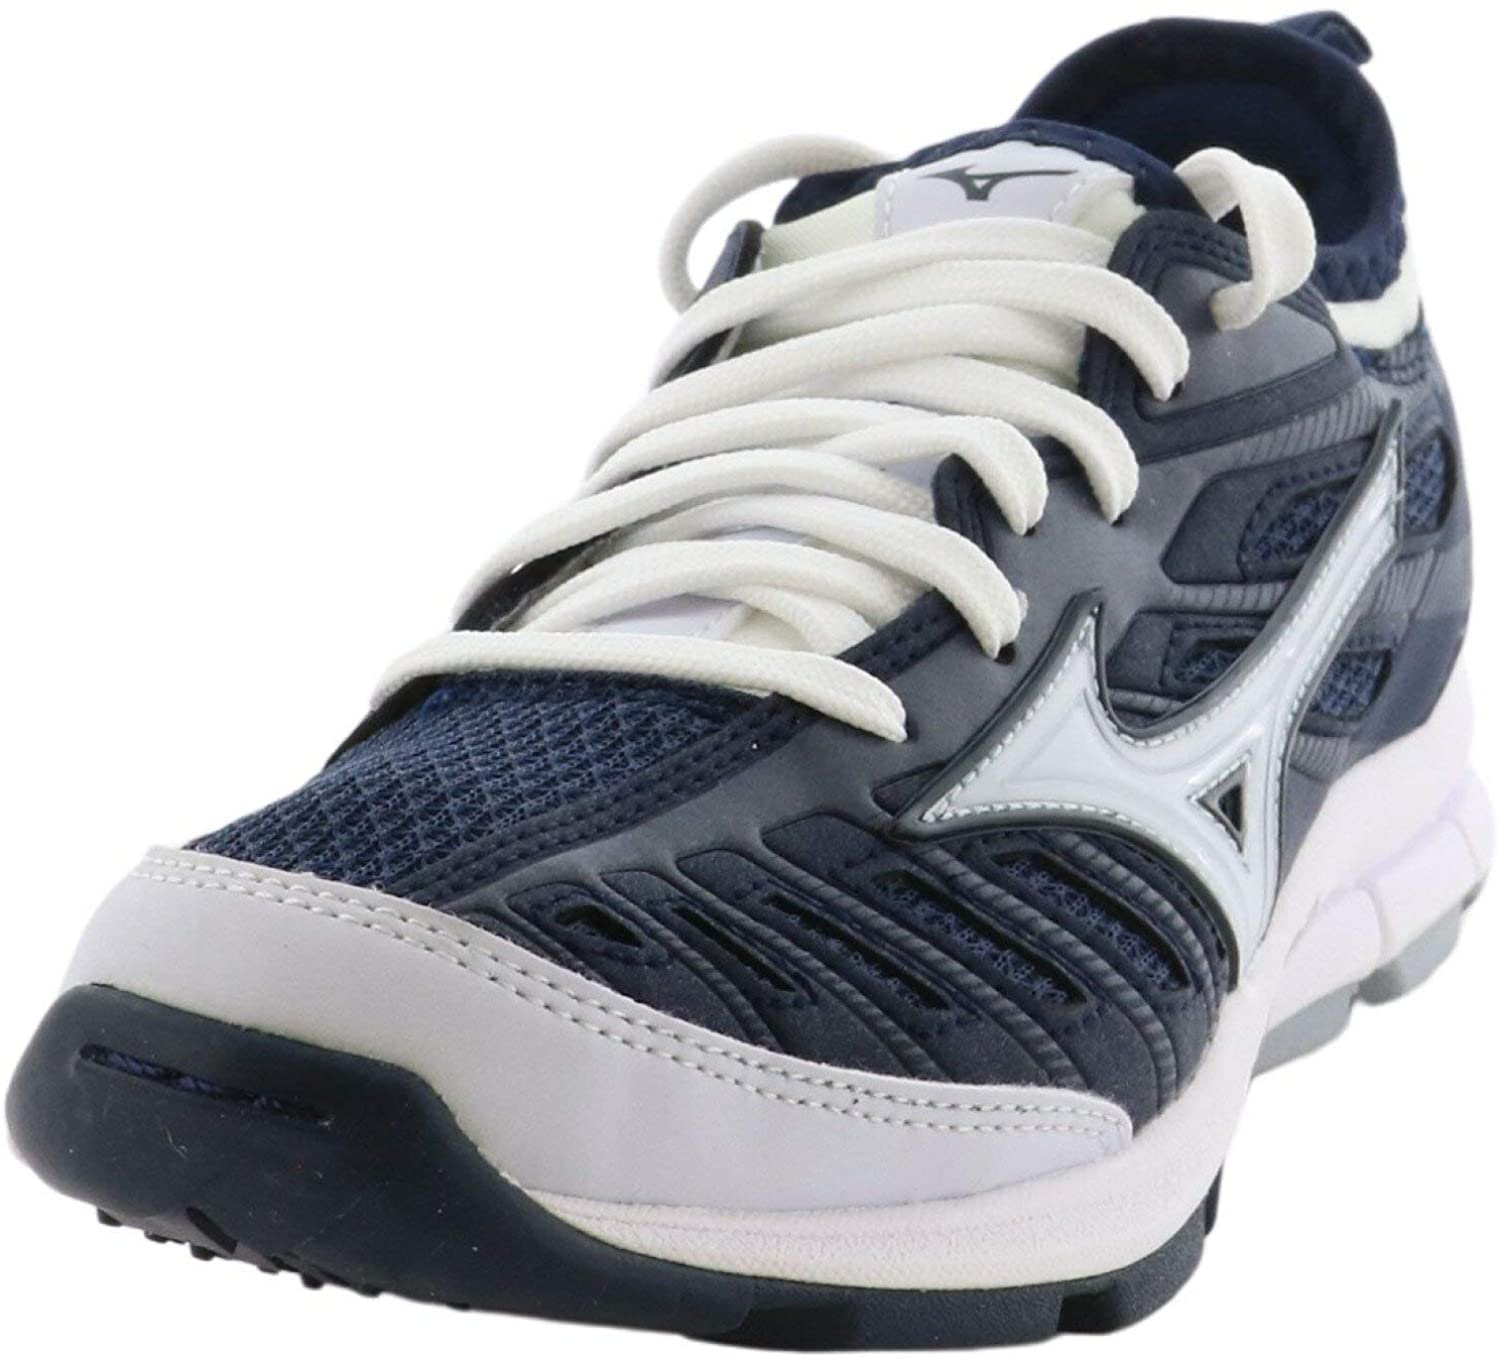 Mizuno (MIZD9 Women's Players Trainer 2 Fastpitch Softball Turf Shoe